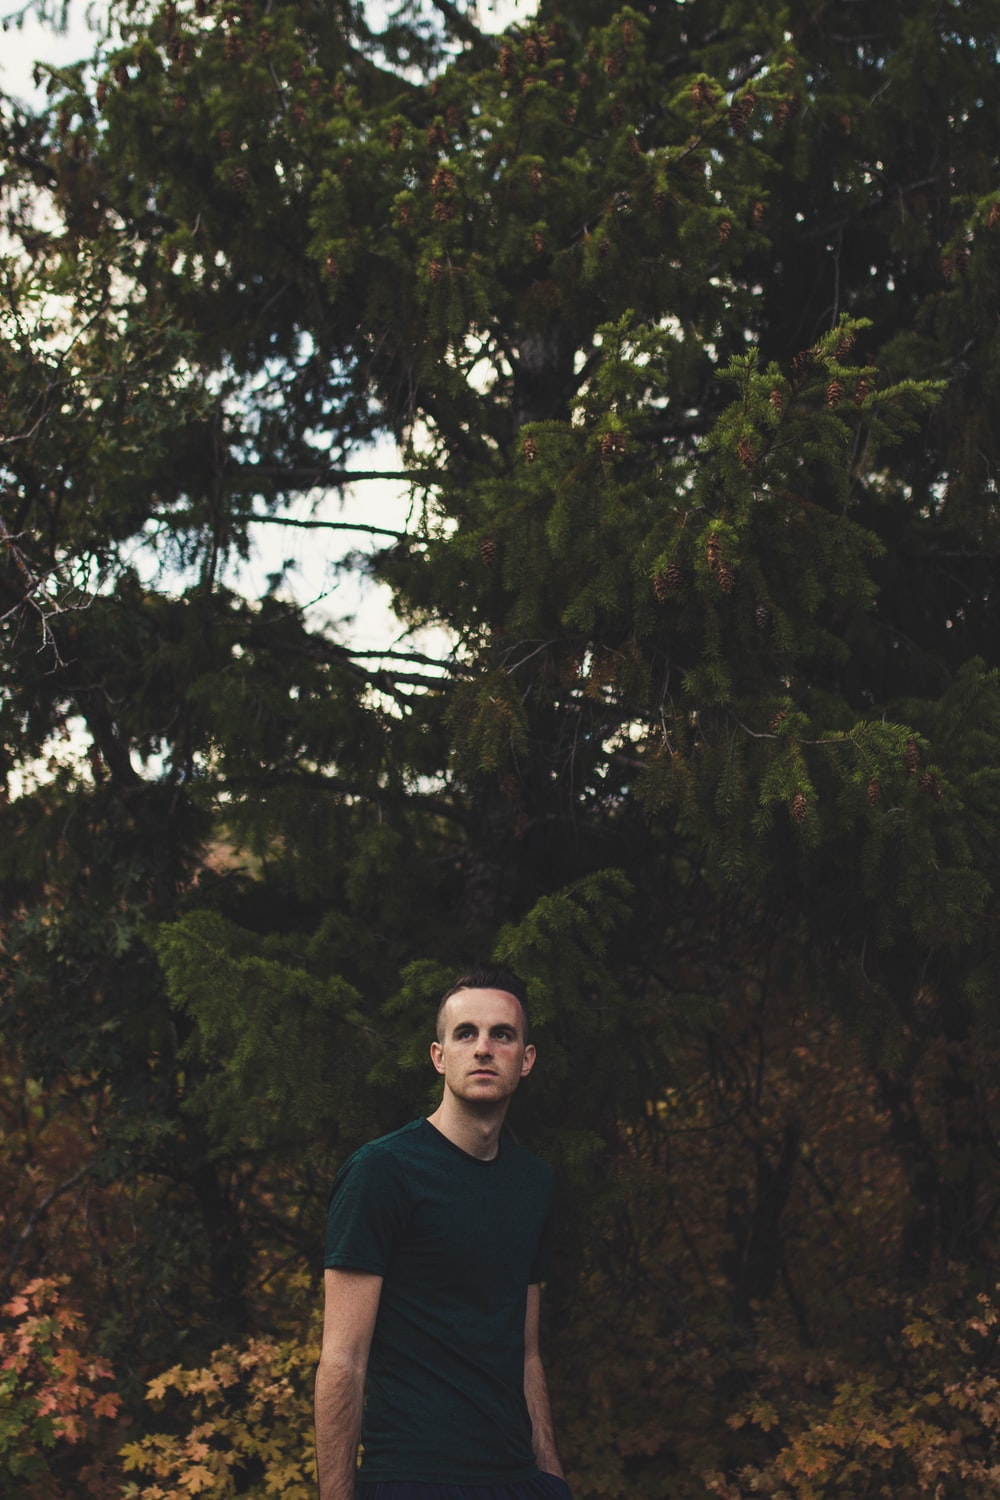 man standing front of green trees at daytime